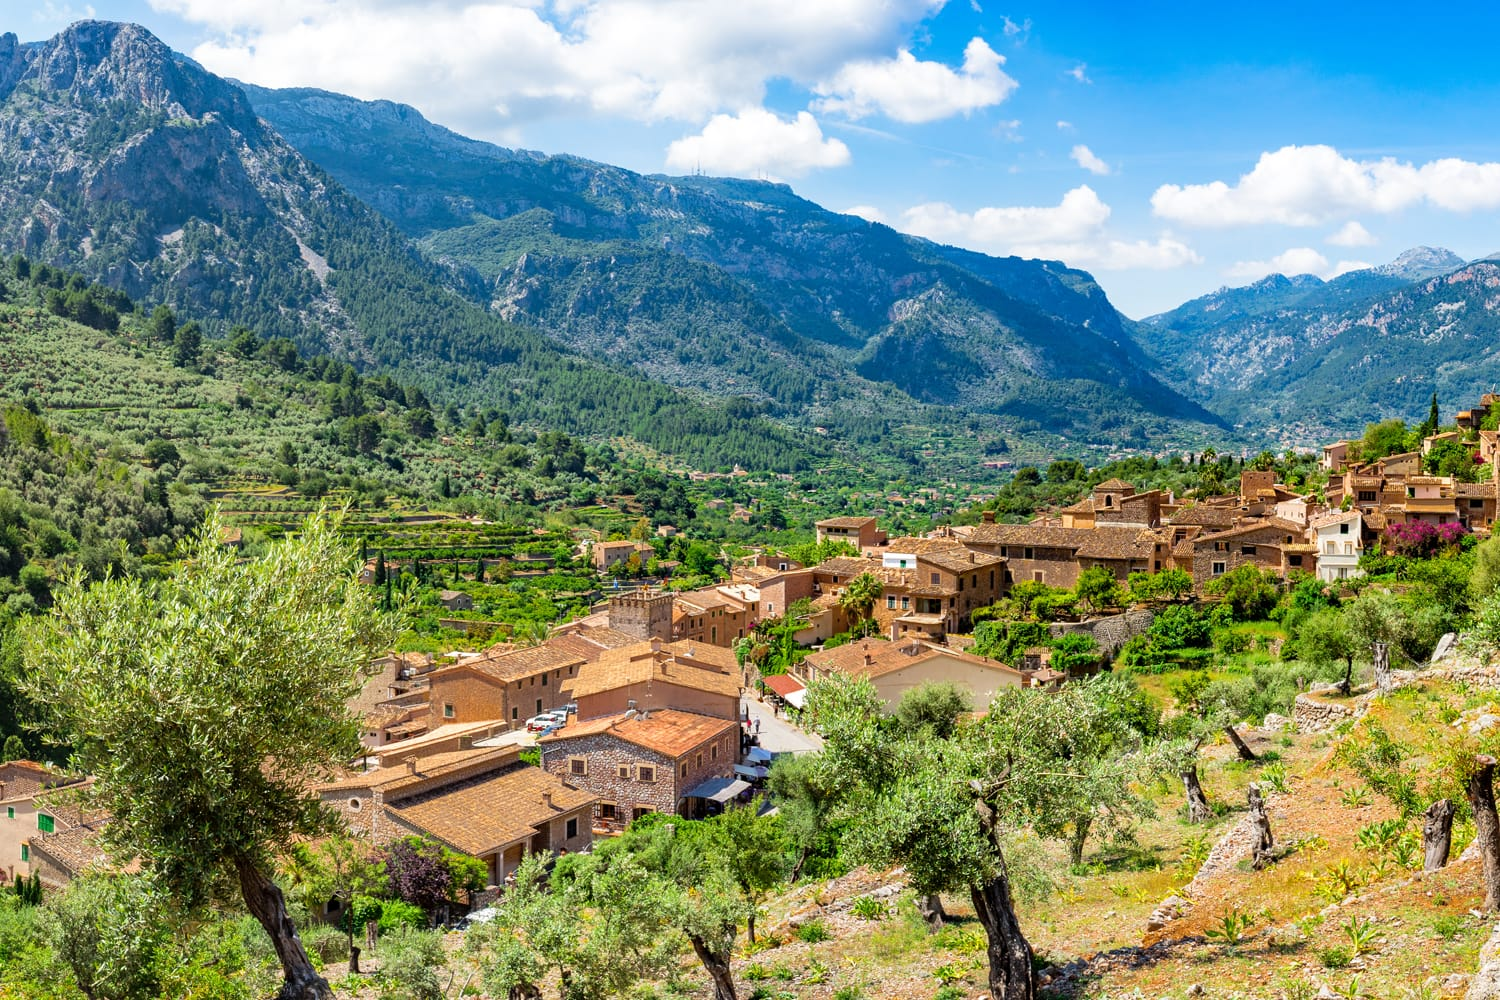 Idyllic panorama view of old village Fornalutx with beautiful mountain landscape of Sierra de Tramuntana on Mallorca, Spain